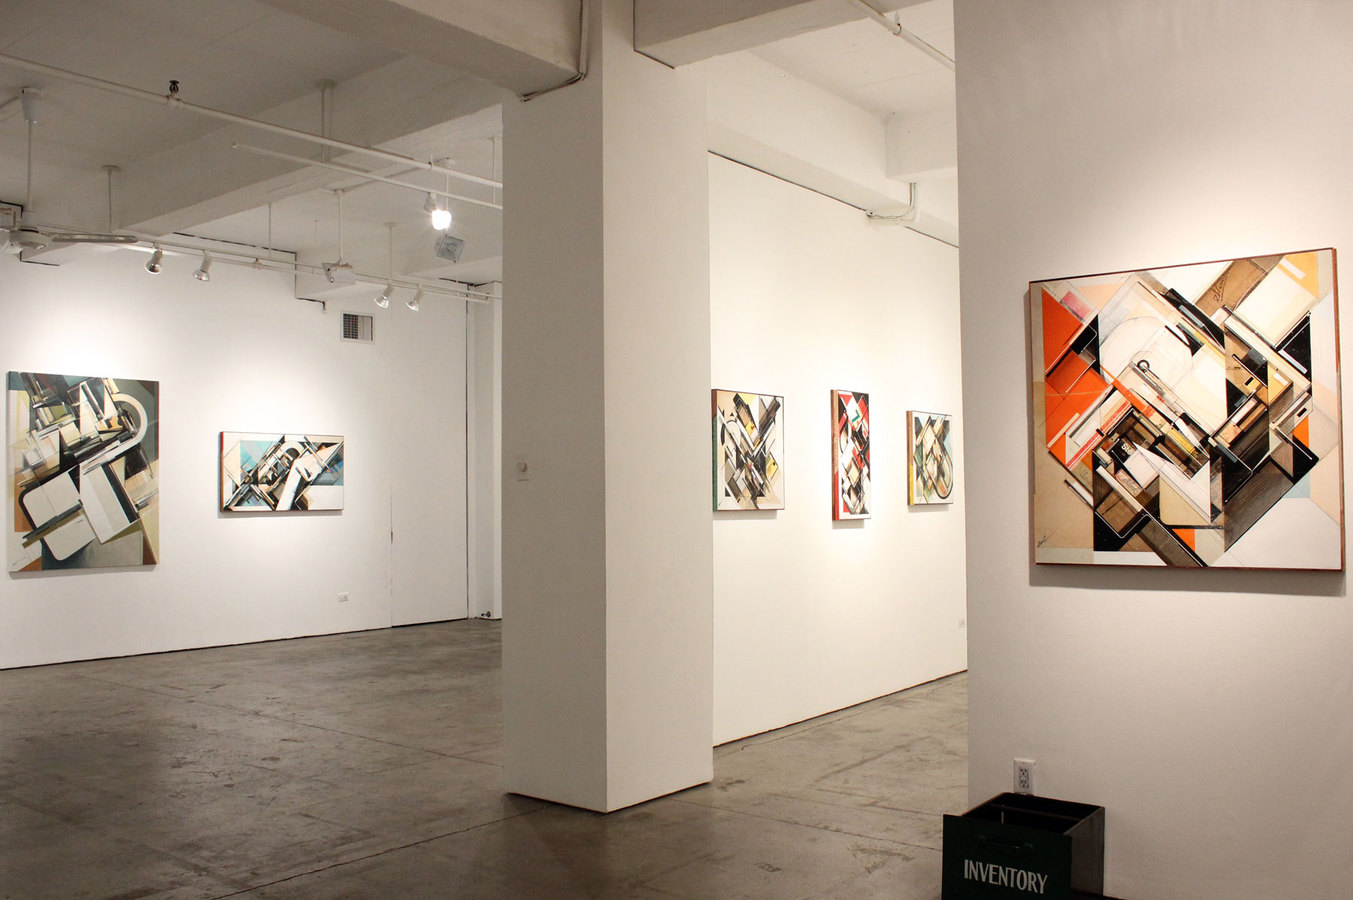 I N V E N T O R Y INVENTORY installation view